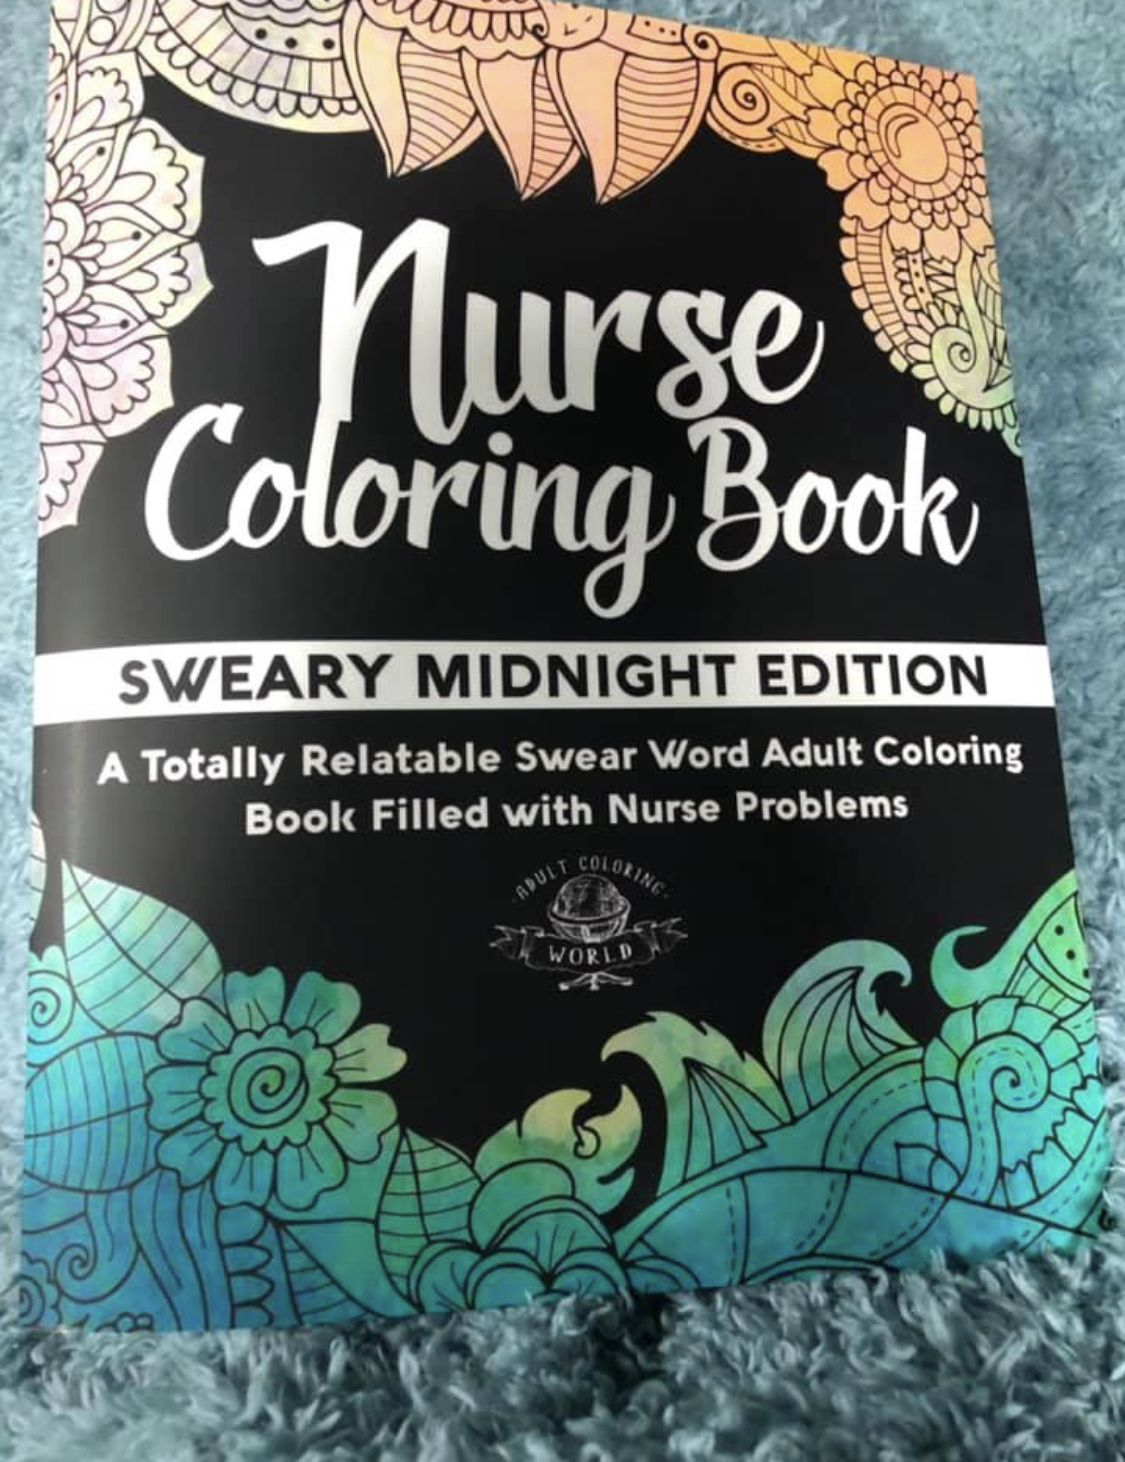 Nurse coloring book sweary midnight edition a totally relatable